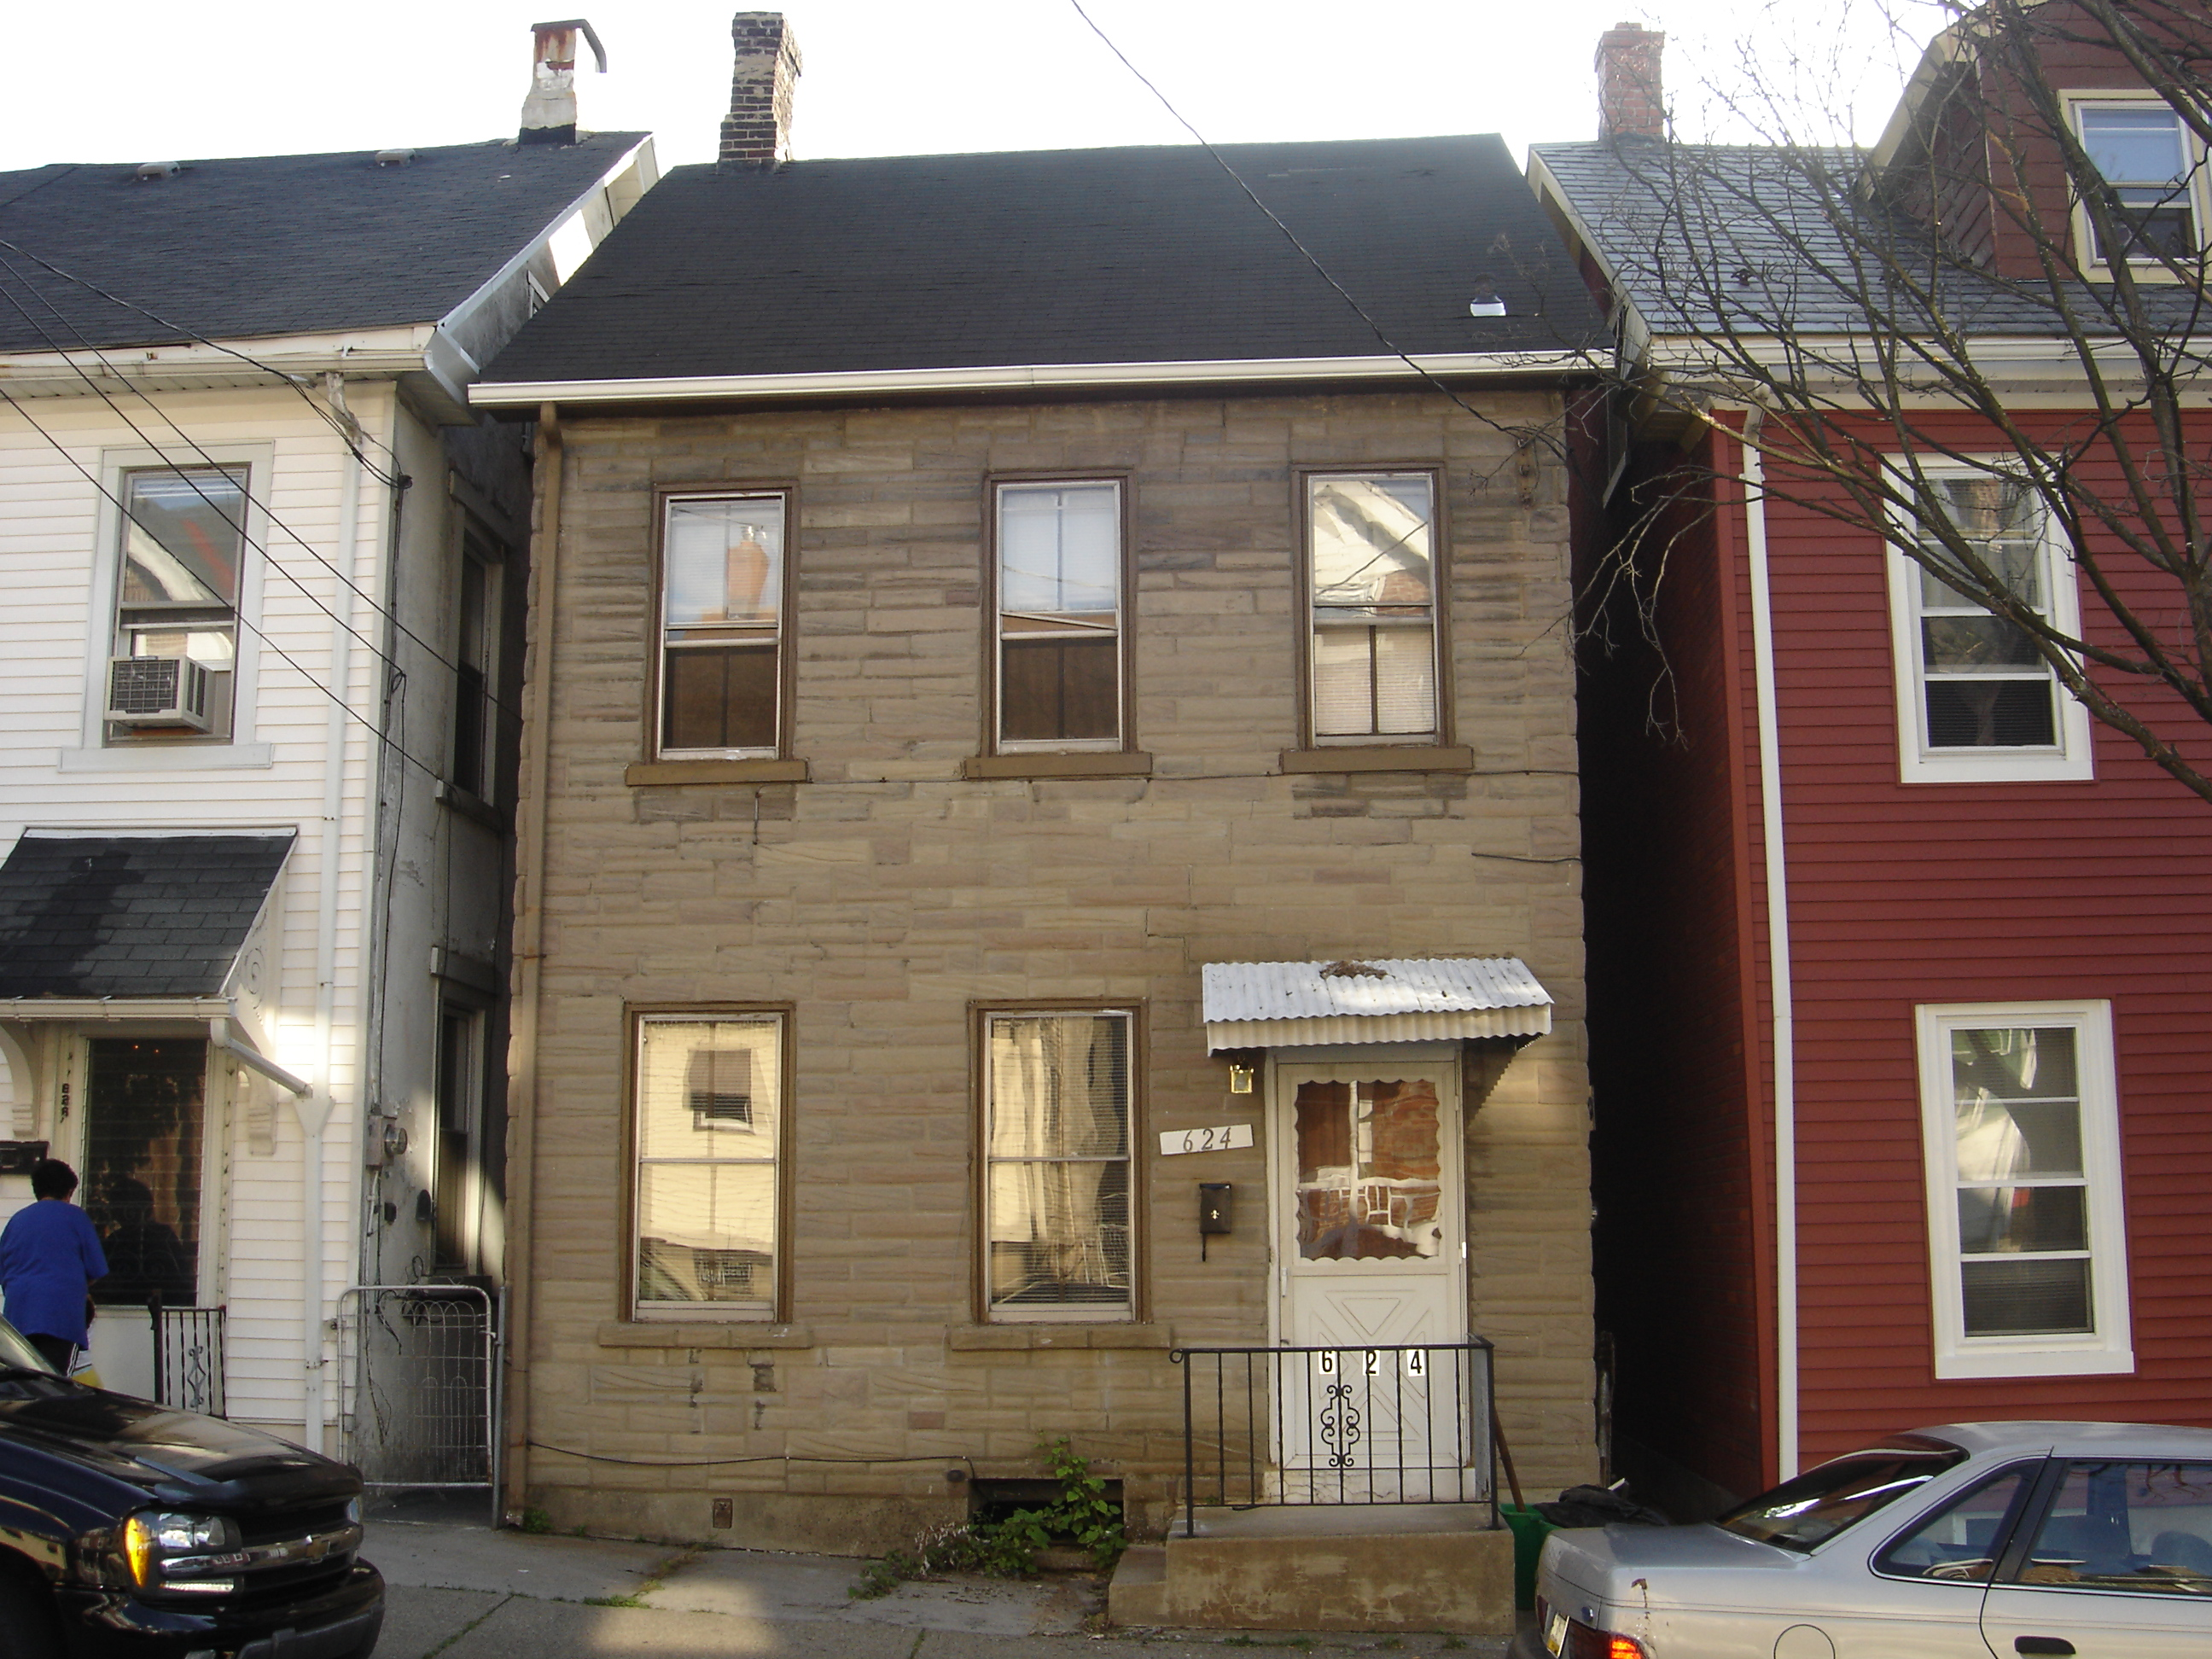 4 Bedroom Houses For Rent In Bethlehem Pa 28 Images Bordaria Cottage Houses For Rent In